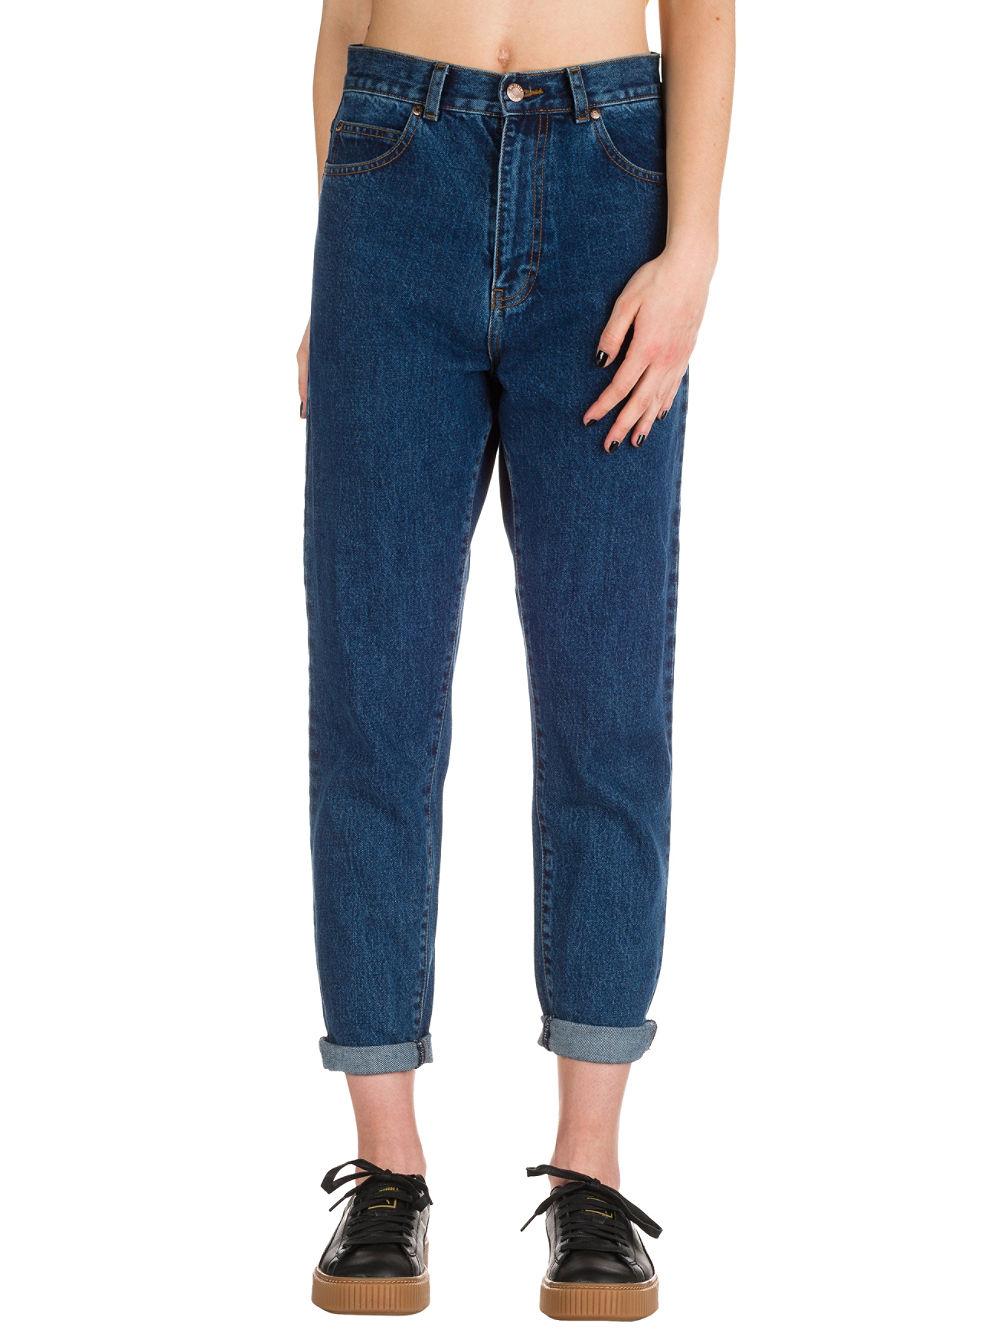 Nora 30 Jeans